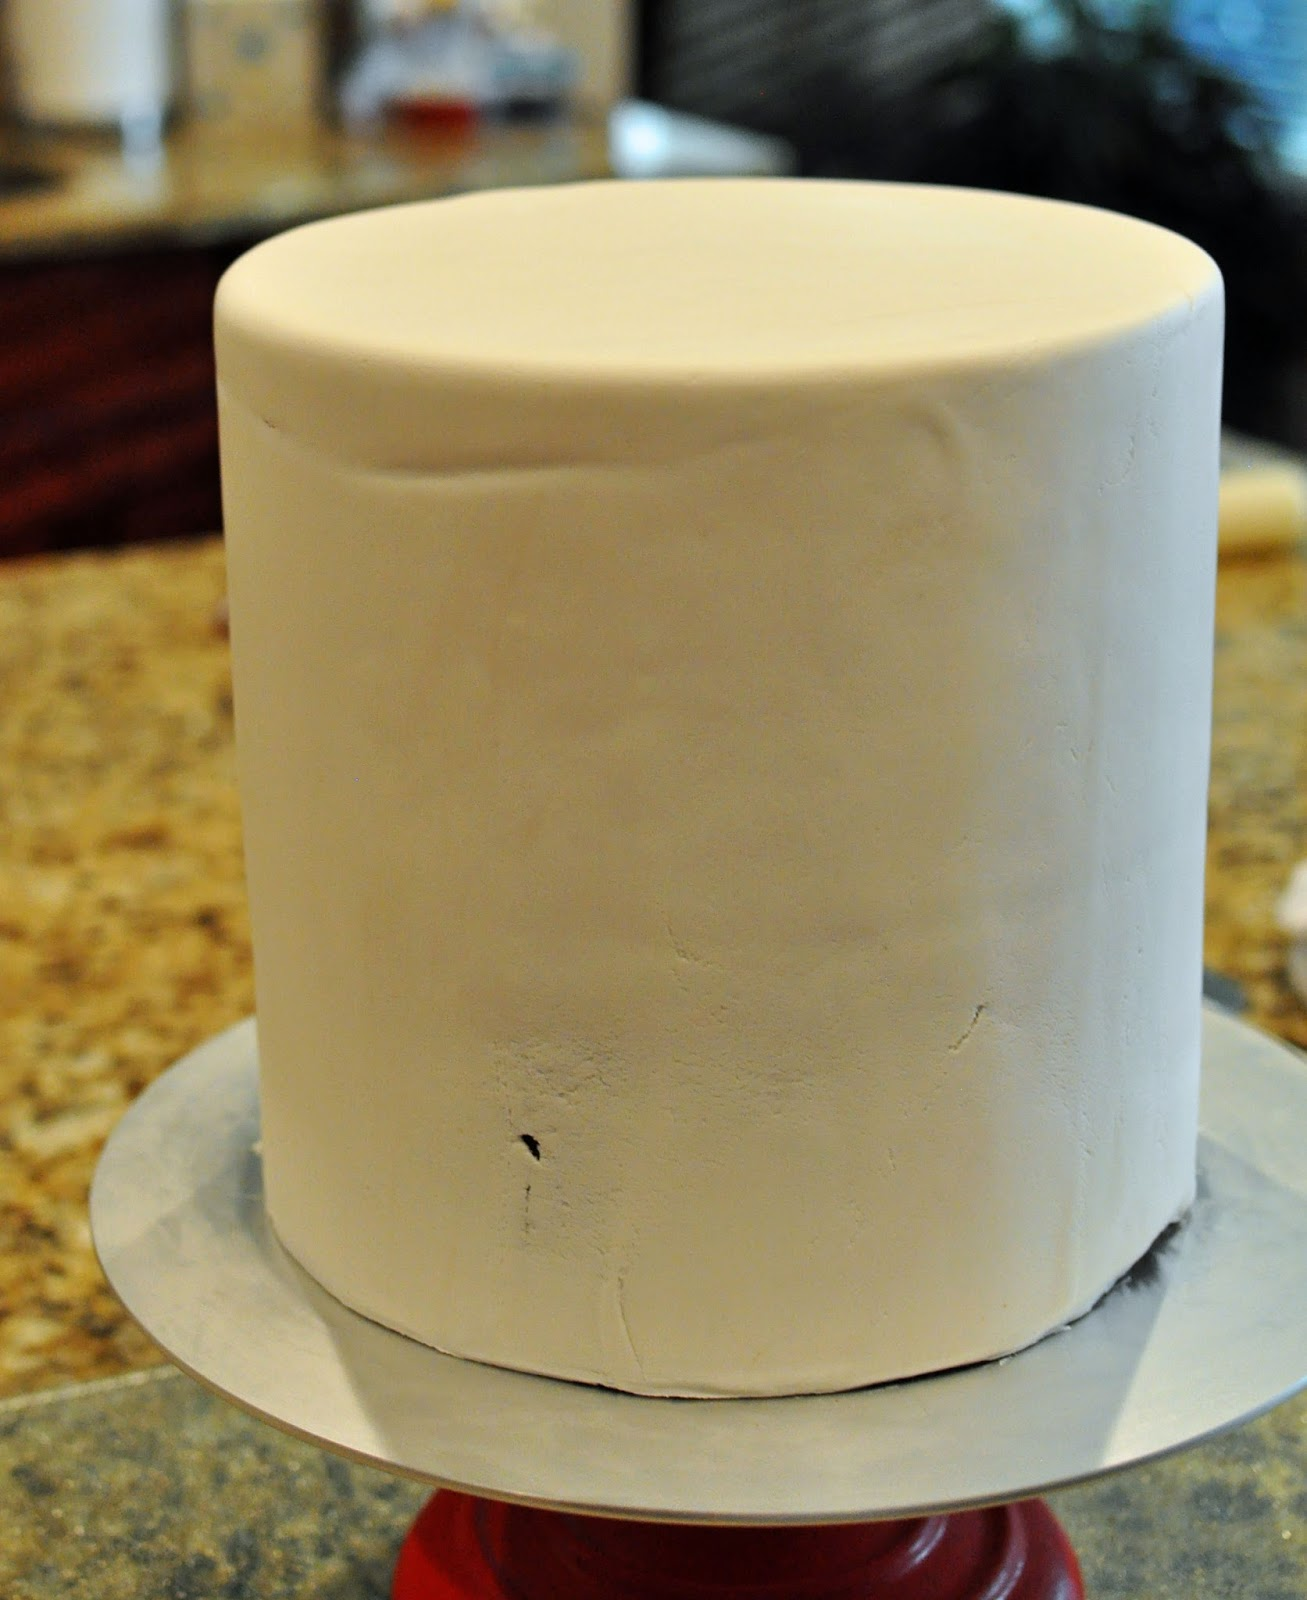 Why The Side Of Fondant Cake Shows